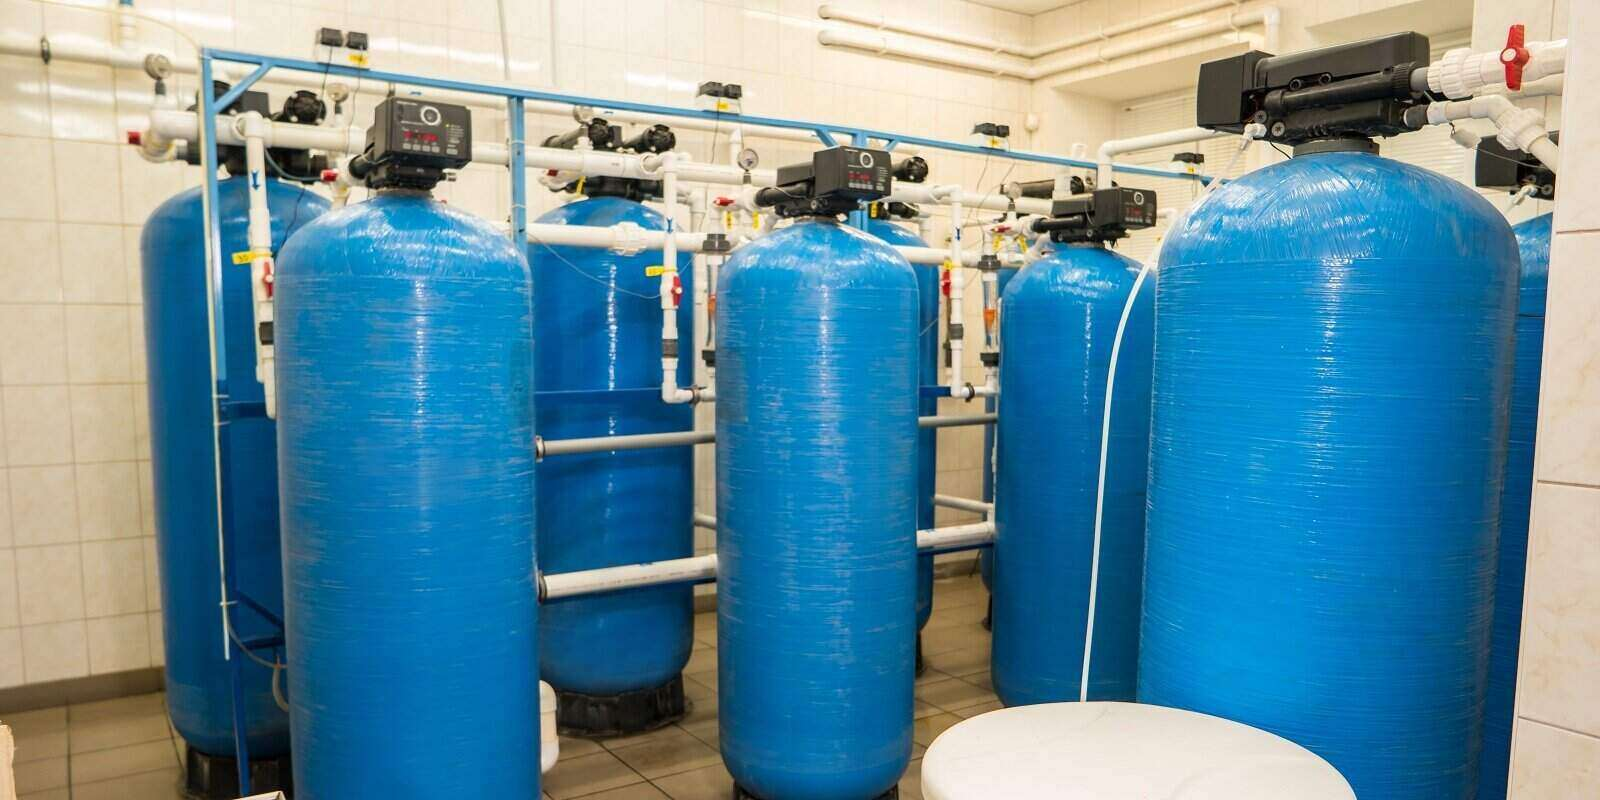 water filters at the plant